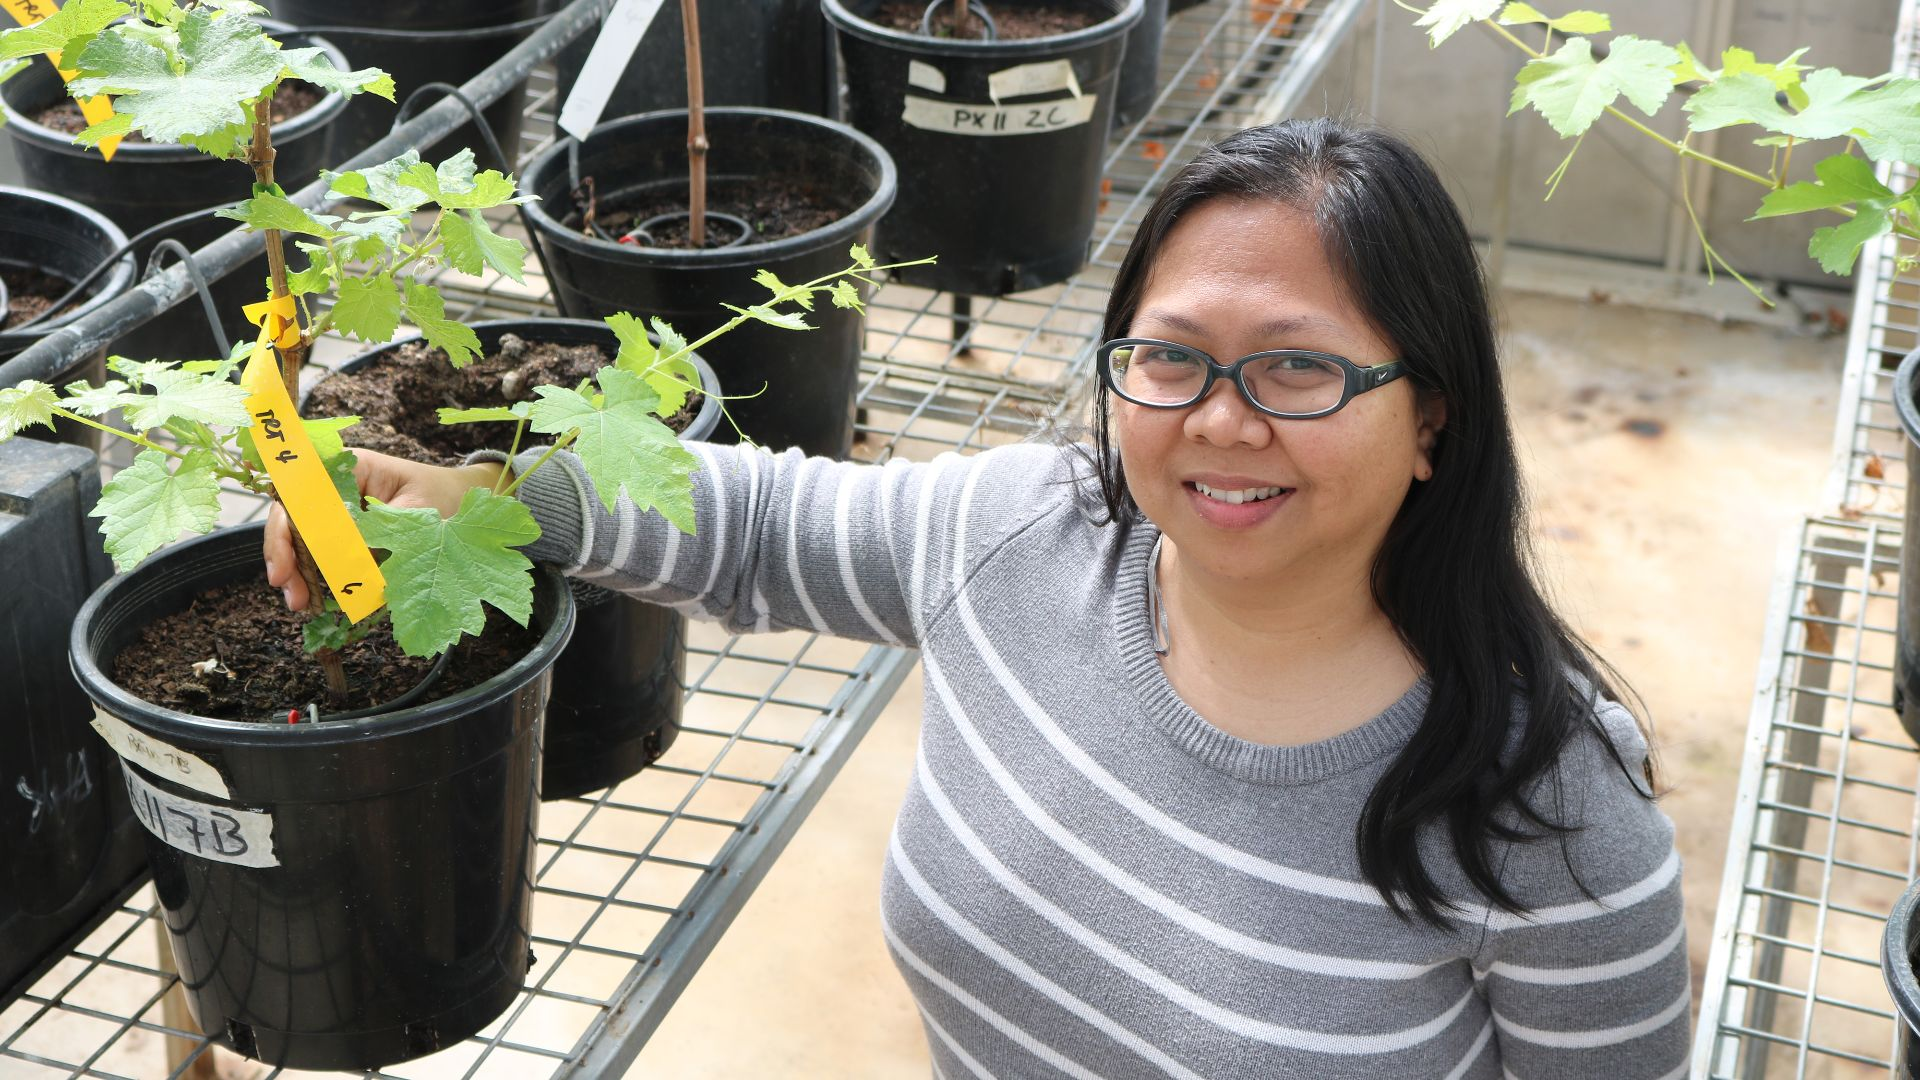 Charles Sturt research identifies potential for new biocontrol of Grapevine Trunk Diseases